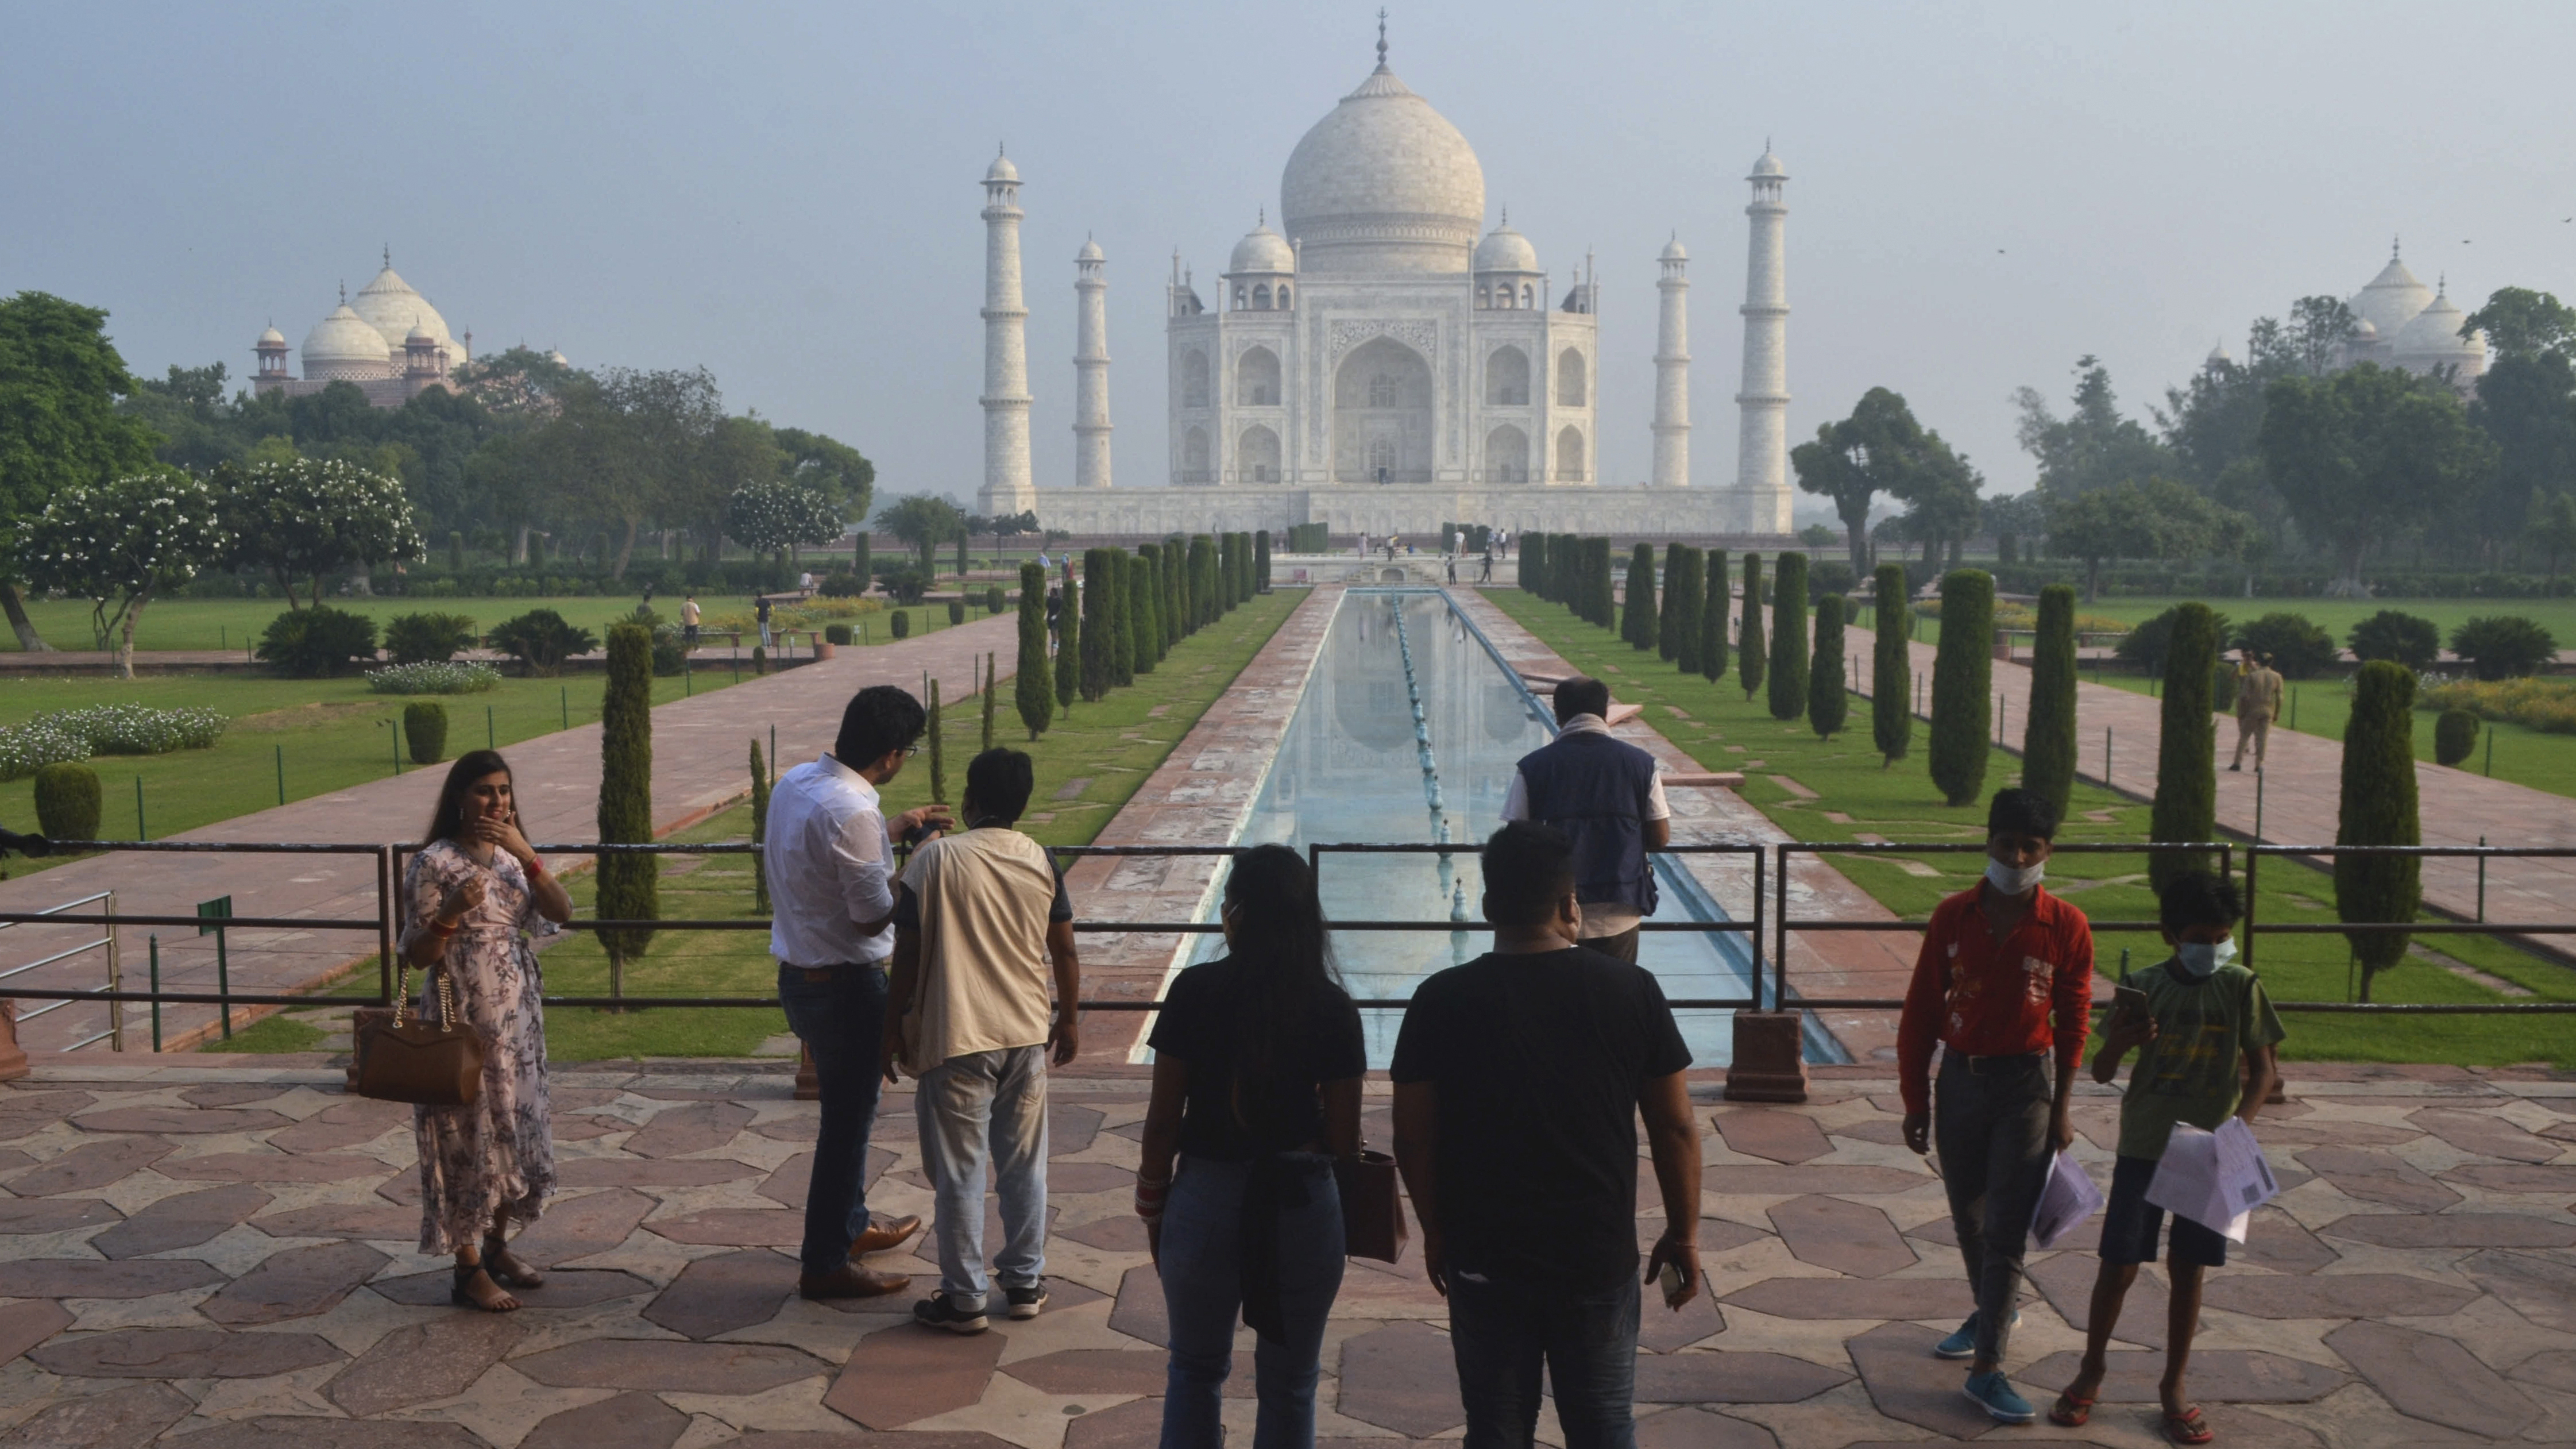 The Taj Mahal has reopened after being closed for more than six months due to the coronavirus pandemic in Agra, India.